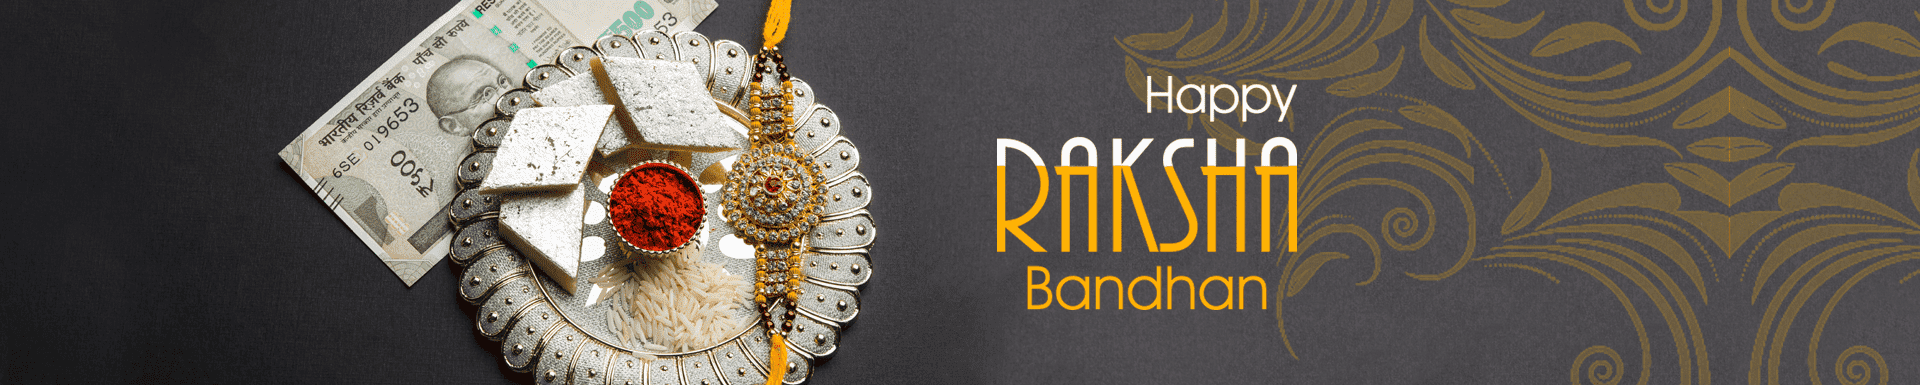 Personalized Raksha Bandhan Gifts